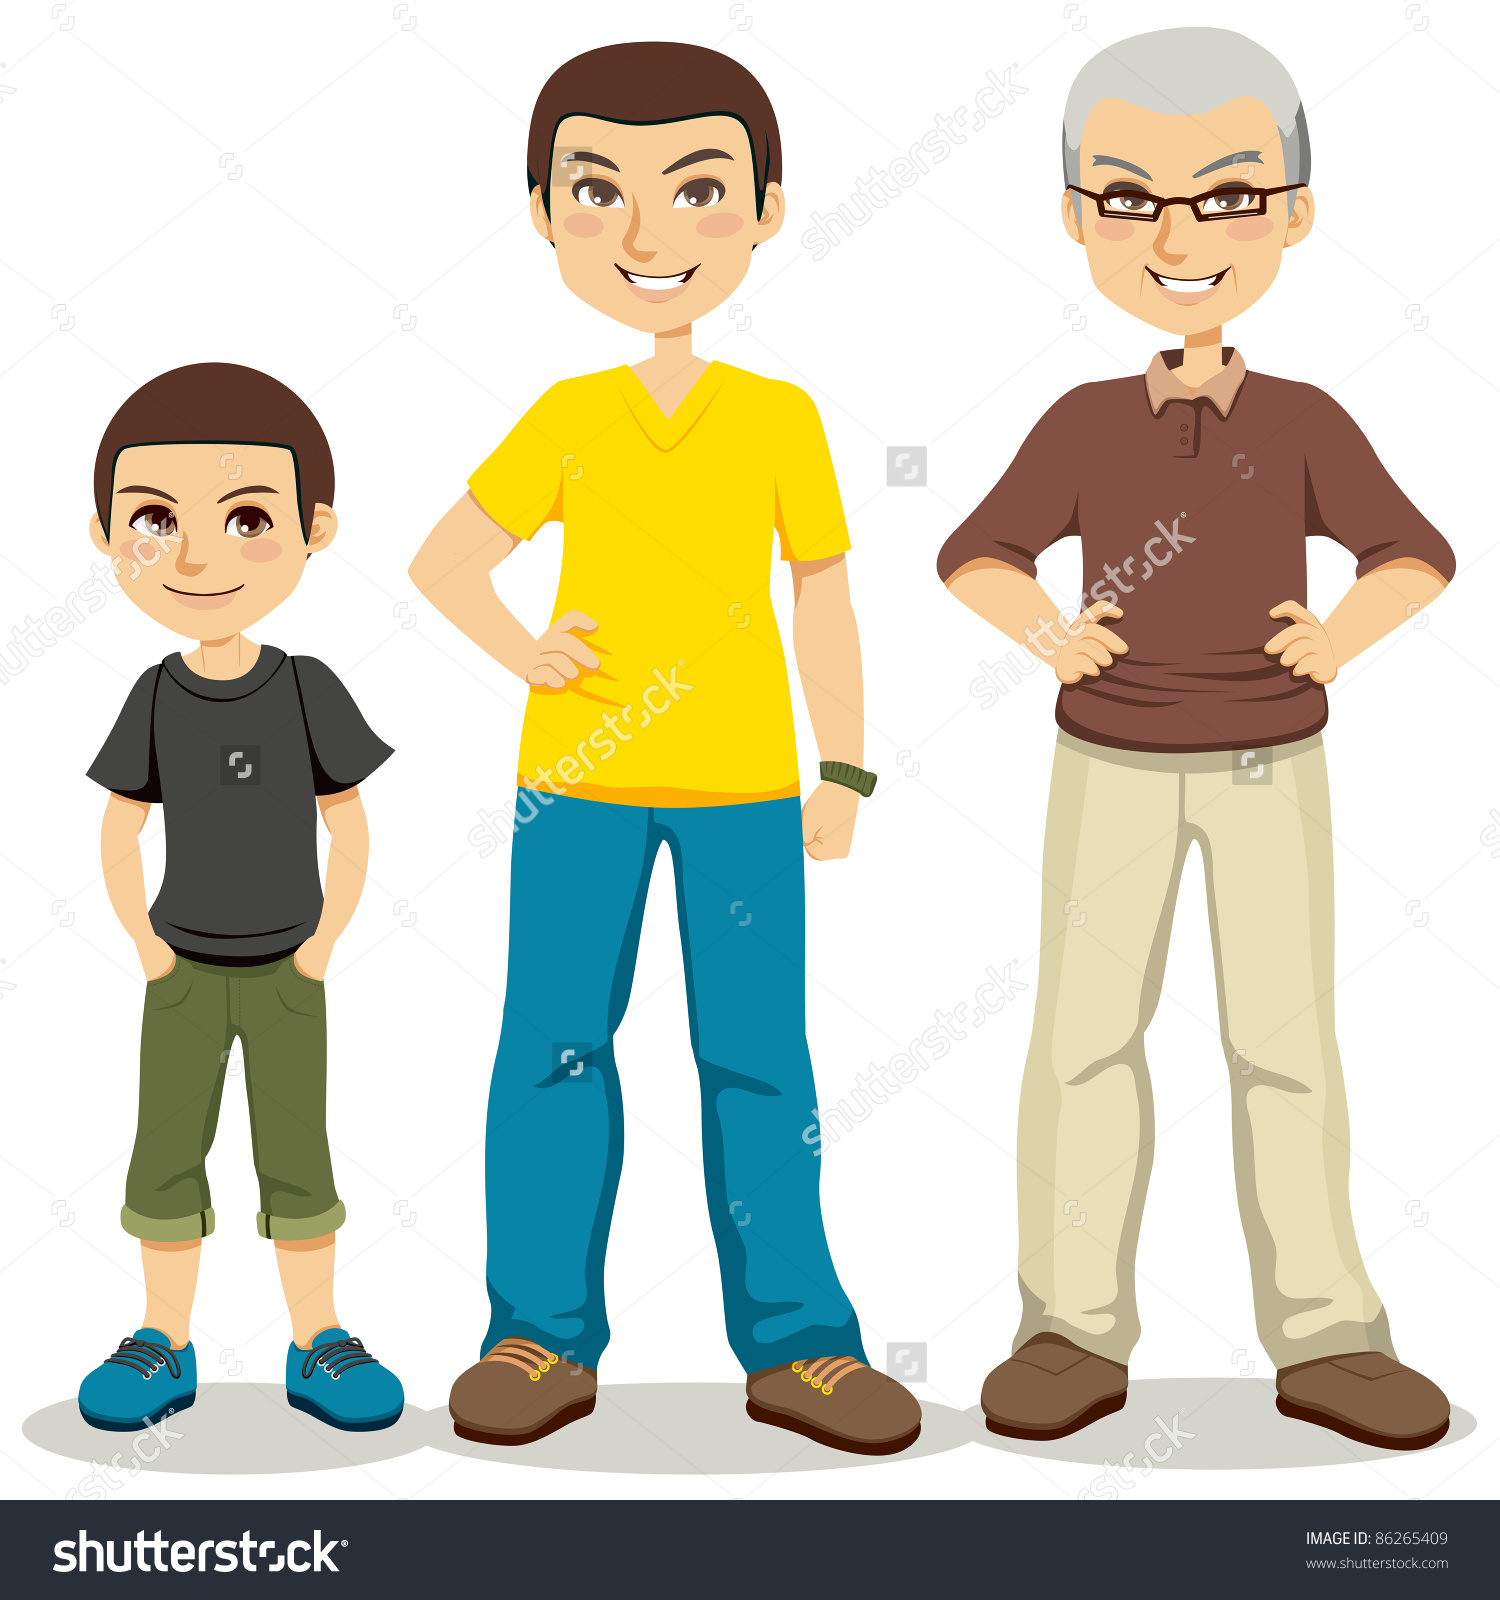 Child Teen Old Man Clipart 20 Free Cliparts  Download -5792